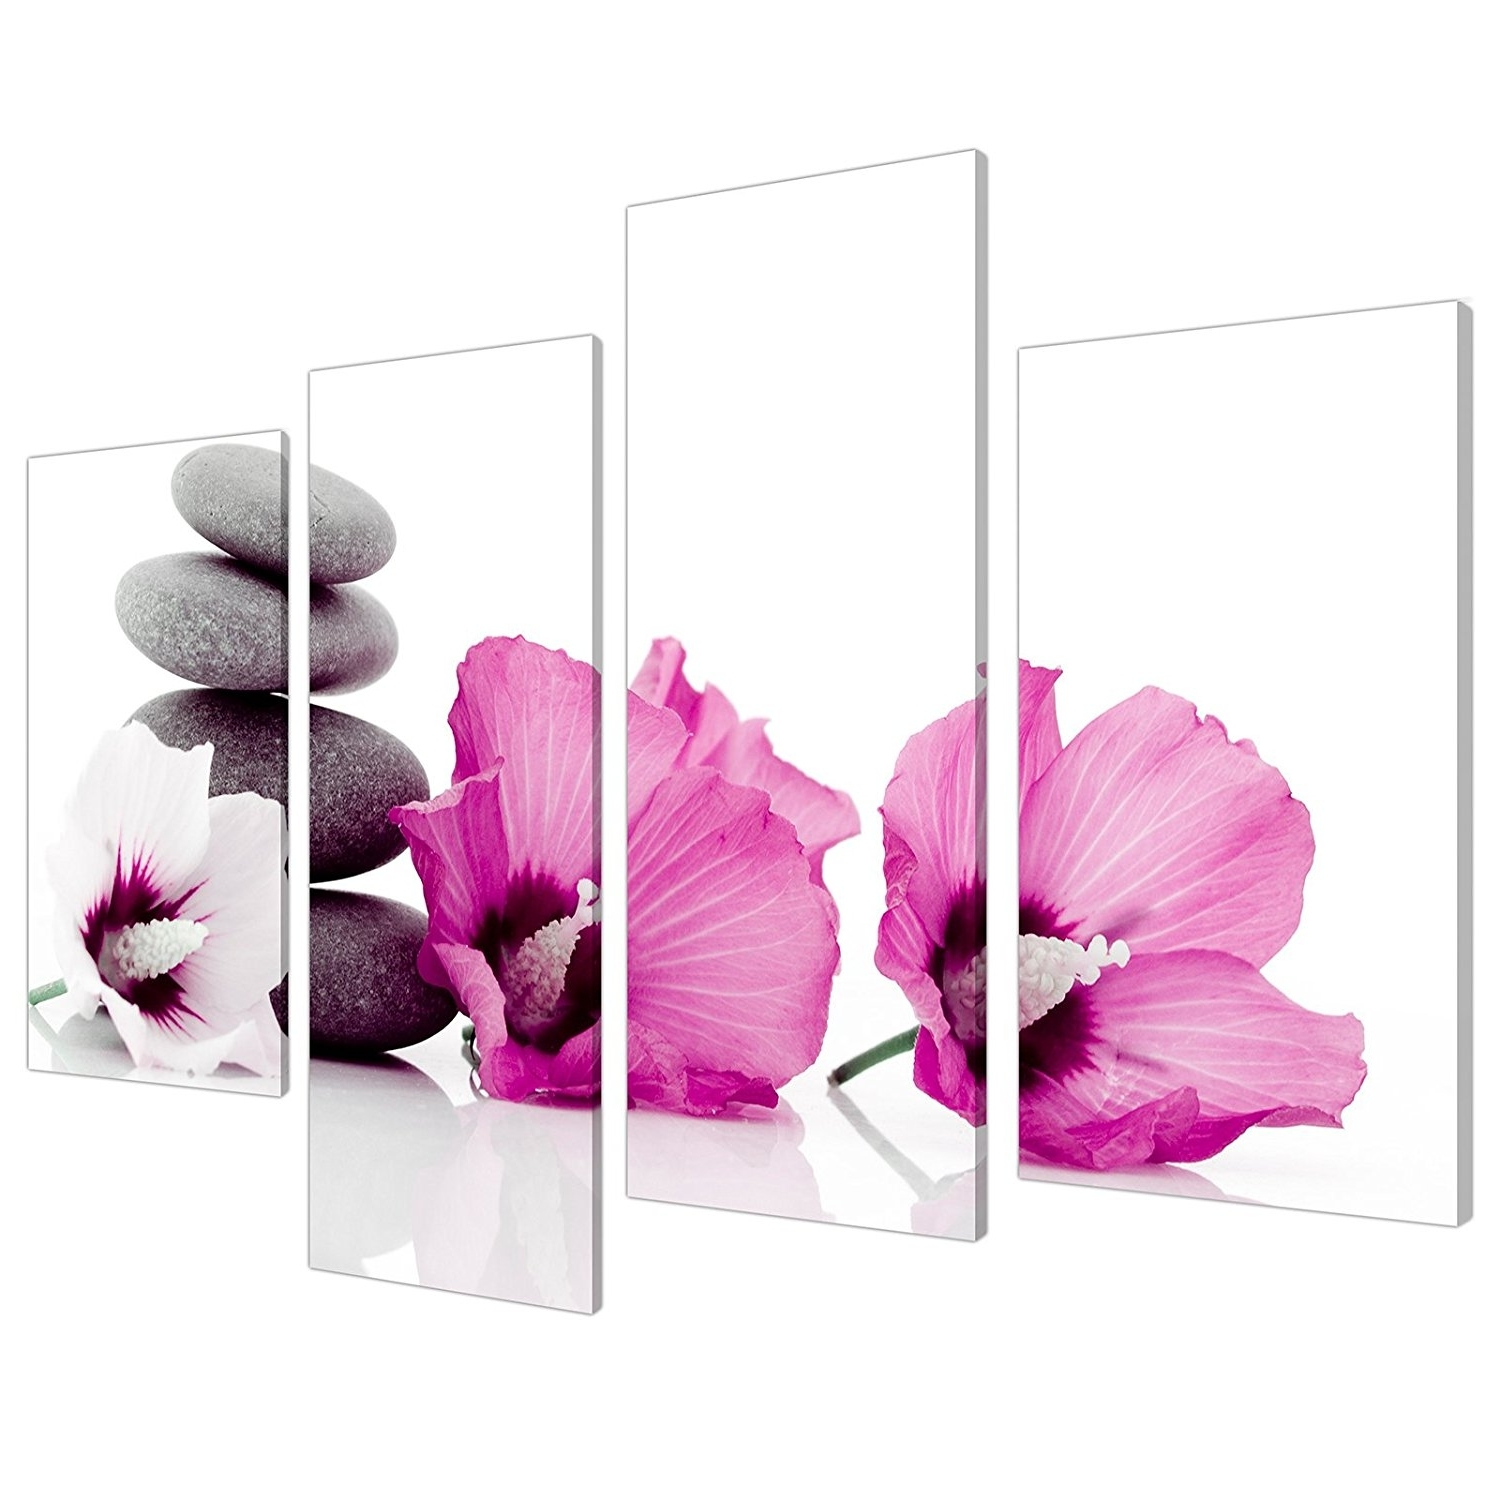 Widely Used Pink Flower Wall Art With Regard To Large Pink Flower Floral Canvas Wall Art Pictures 130Cm Set Xl (View 15 of 15)